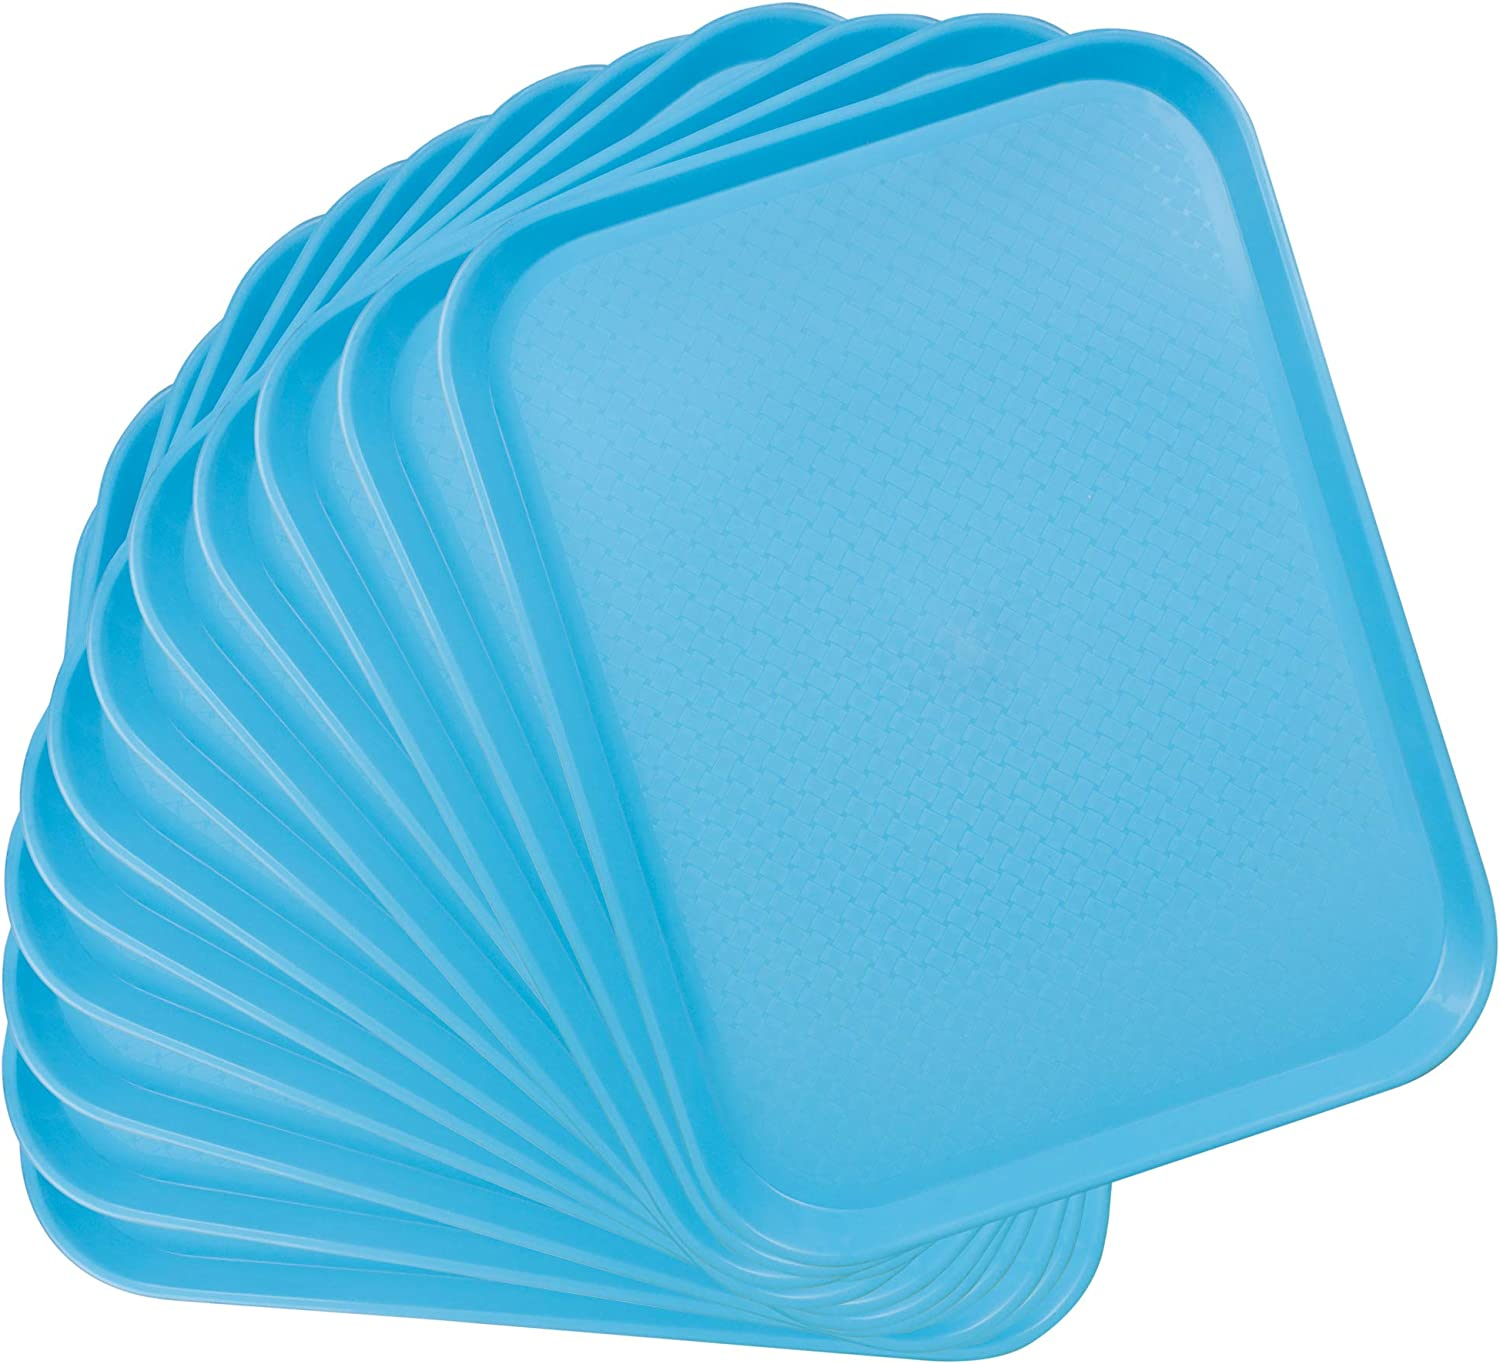 12-pack Fast Food Cafeteria Tray | Twelve 14 x 18 Rectangular Textured Plastic Food Serving TV Tray Multipack | School Lunch, Diner, Commercial Kitchen Restaurant Equipment (Blue)